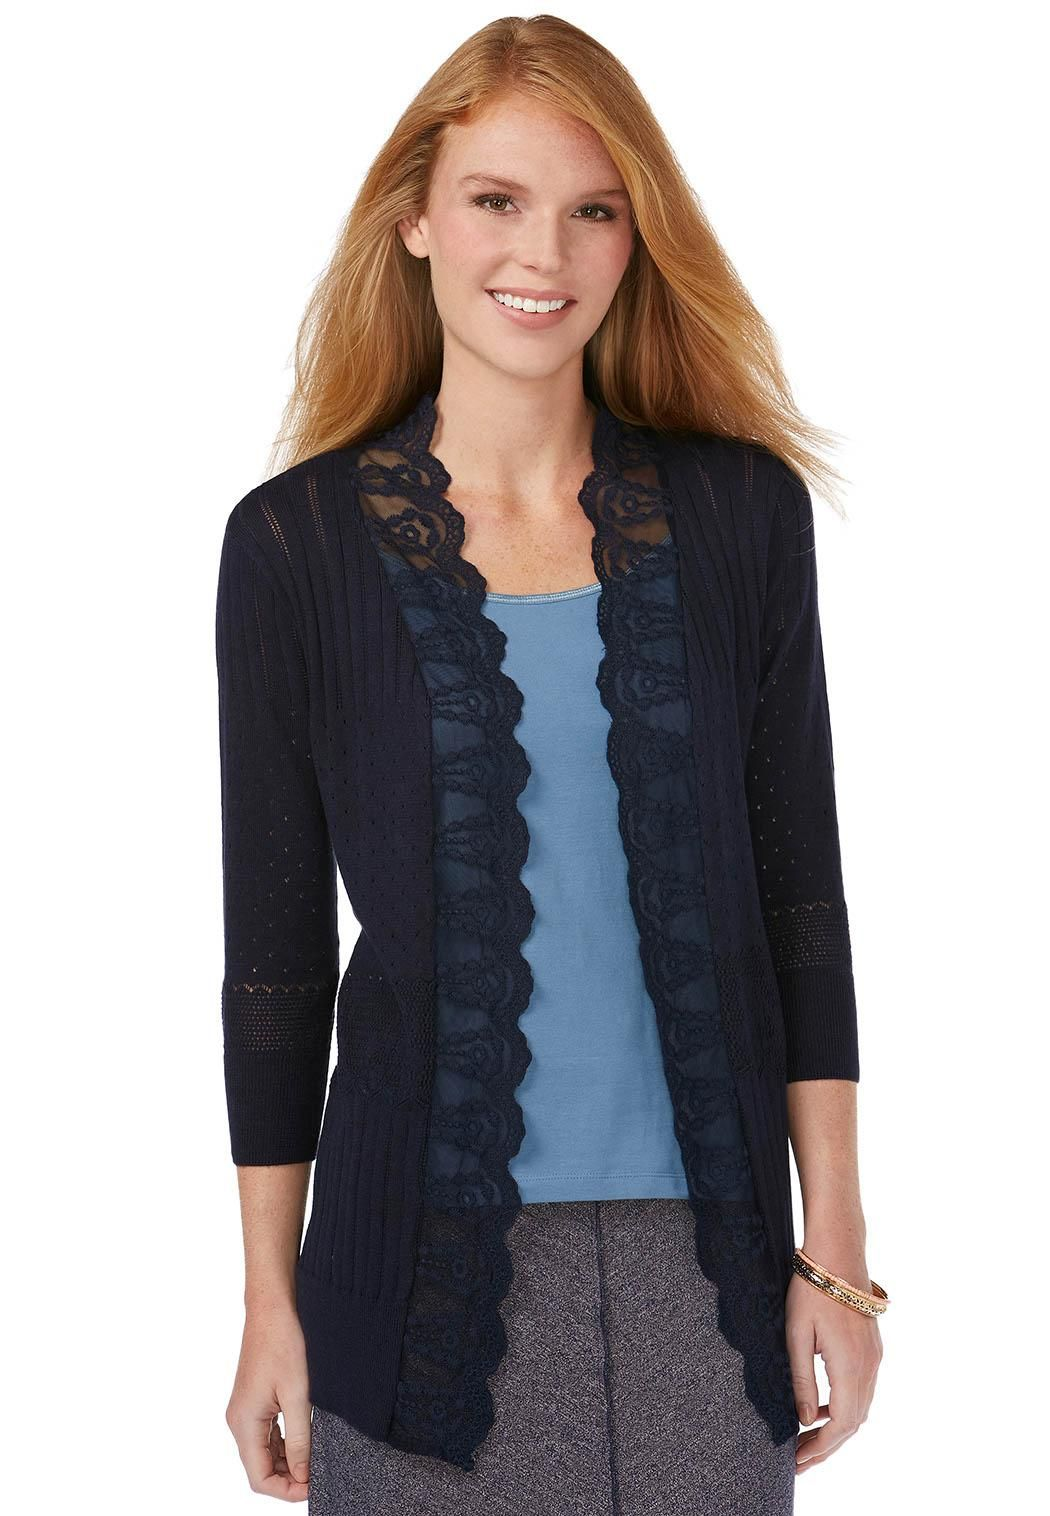 Lace Trim Cardigan Sweaters Cato Fashions | Sweater Weather ...